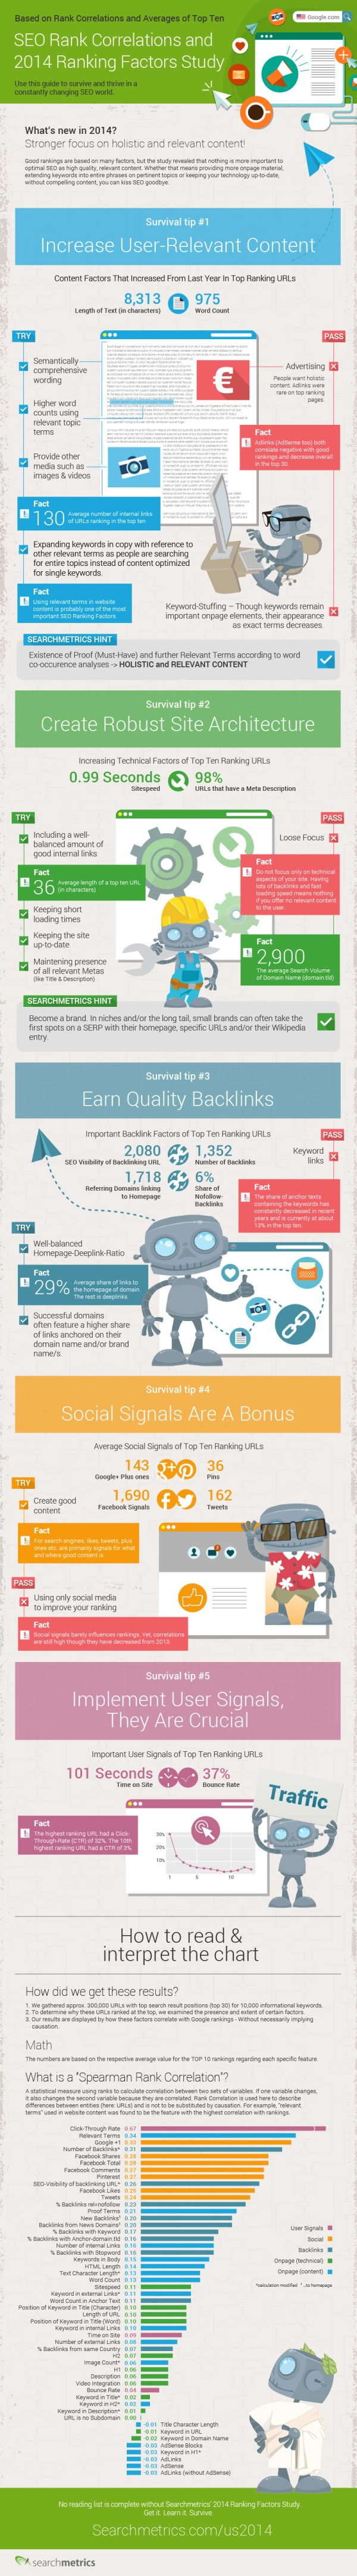 Infografica dei Searchmetrics Ranking Factors 2014